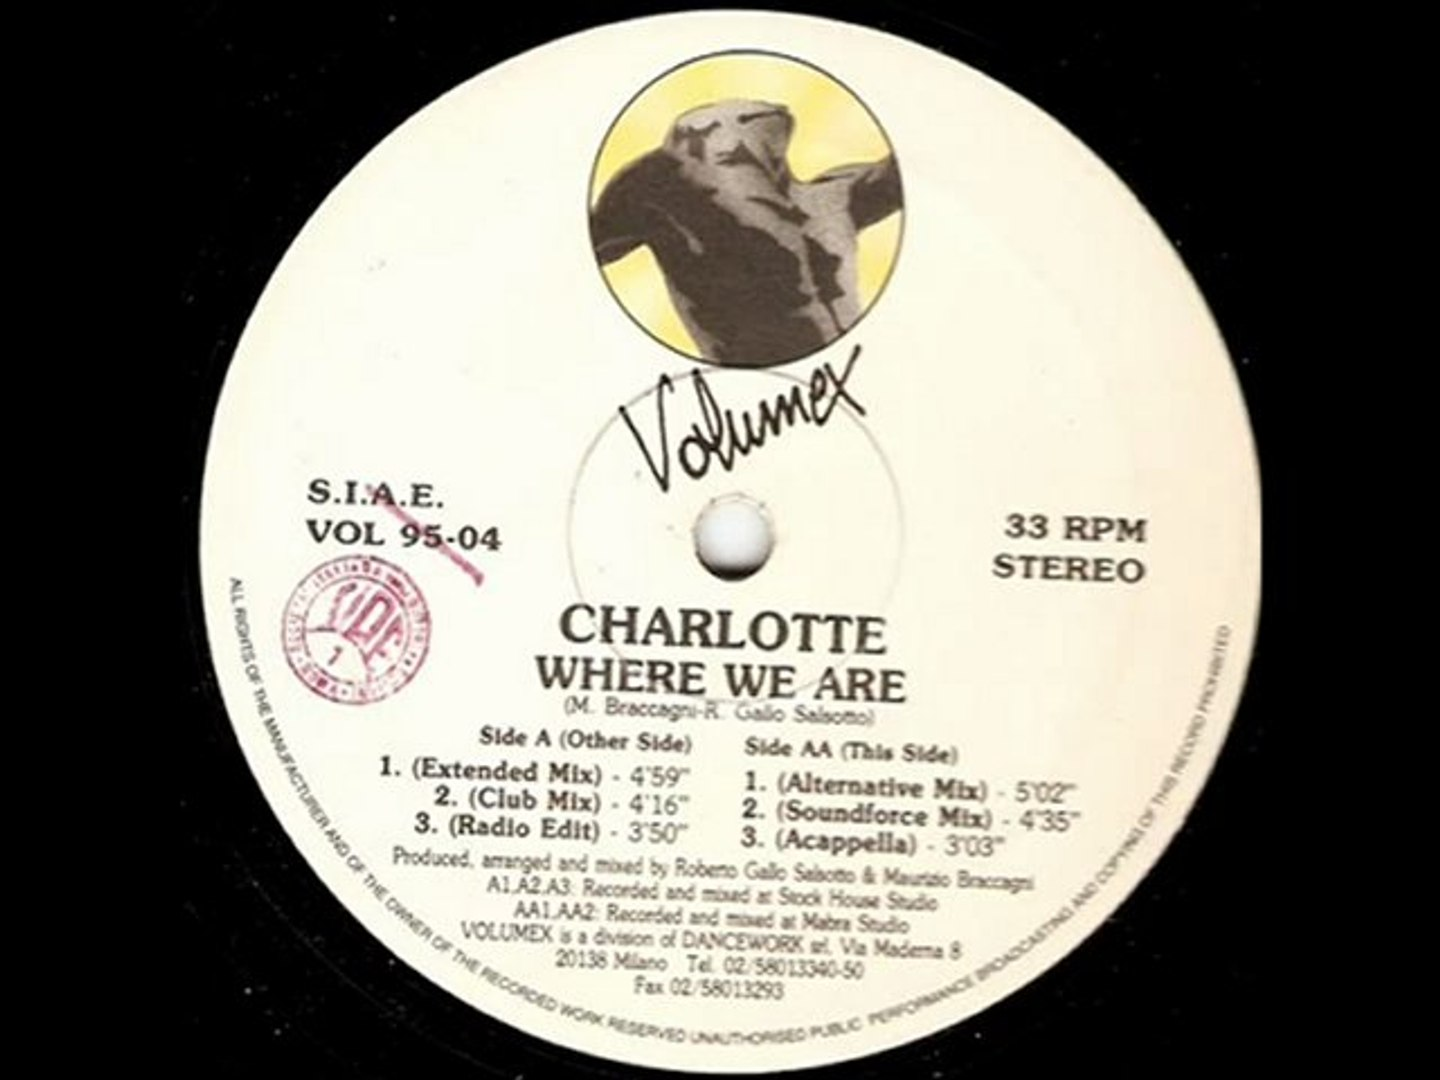 Charlotte - Where We Are (Club Mix)